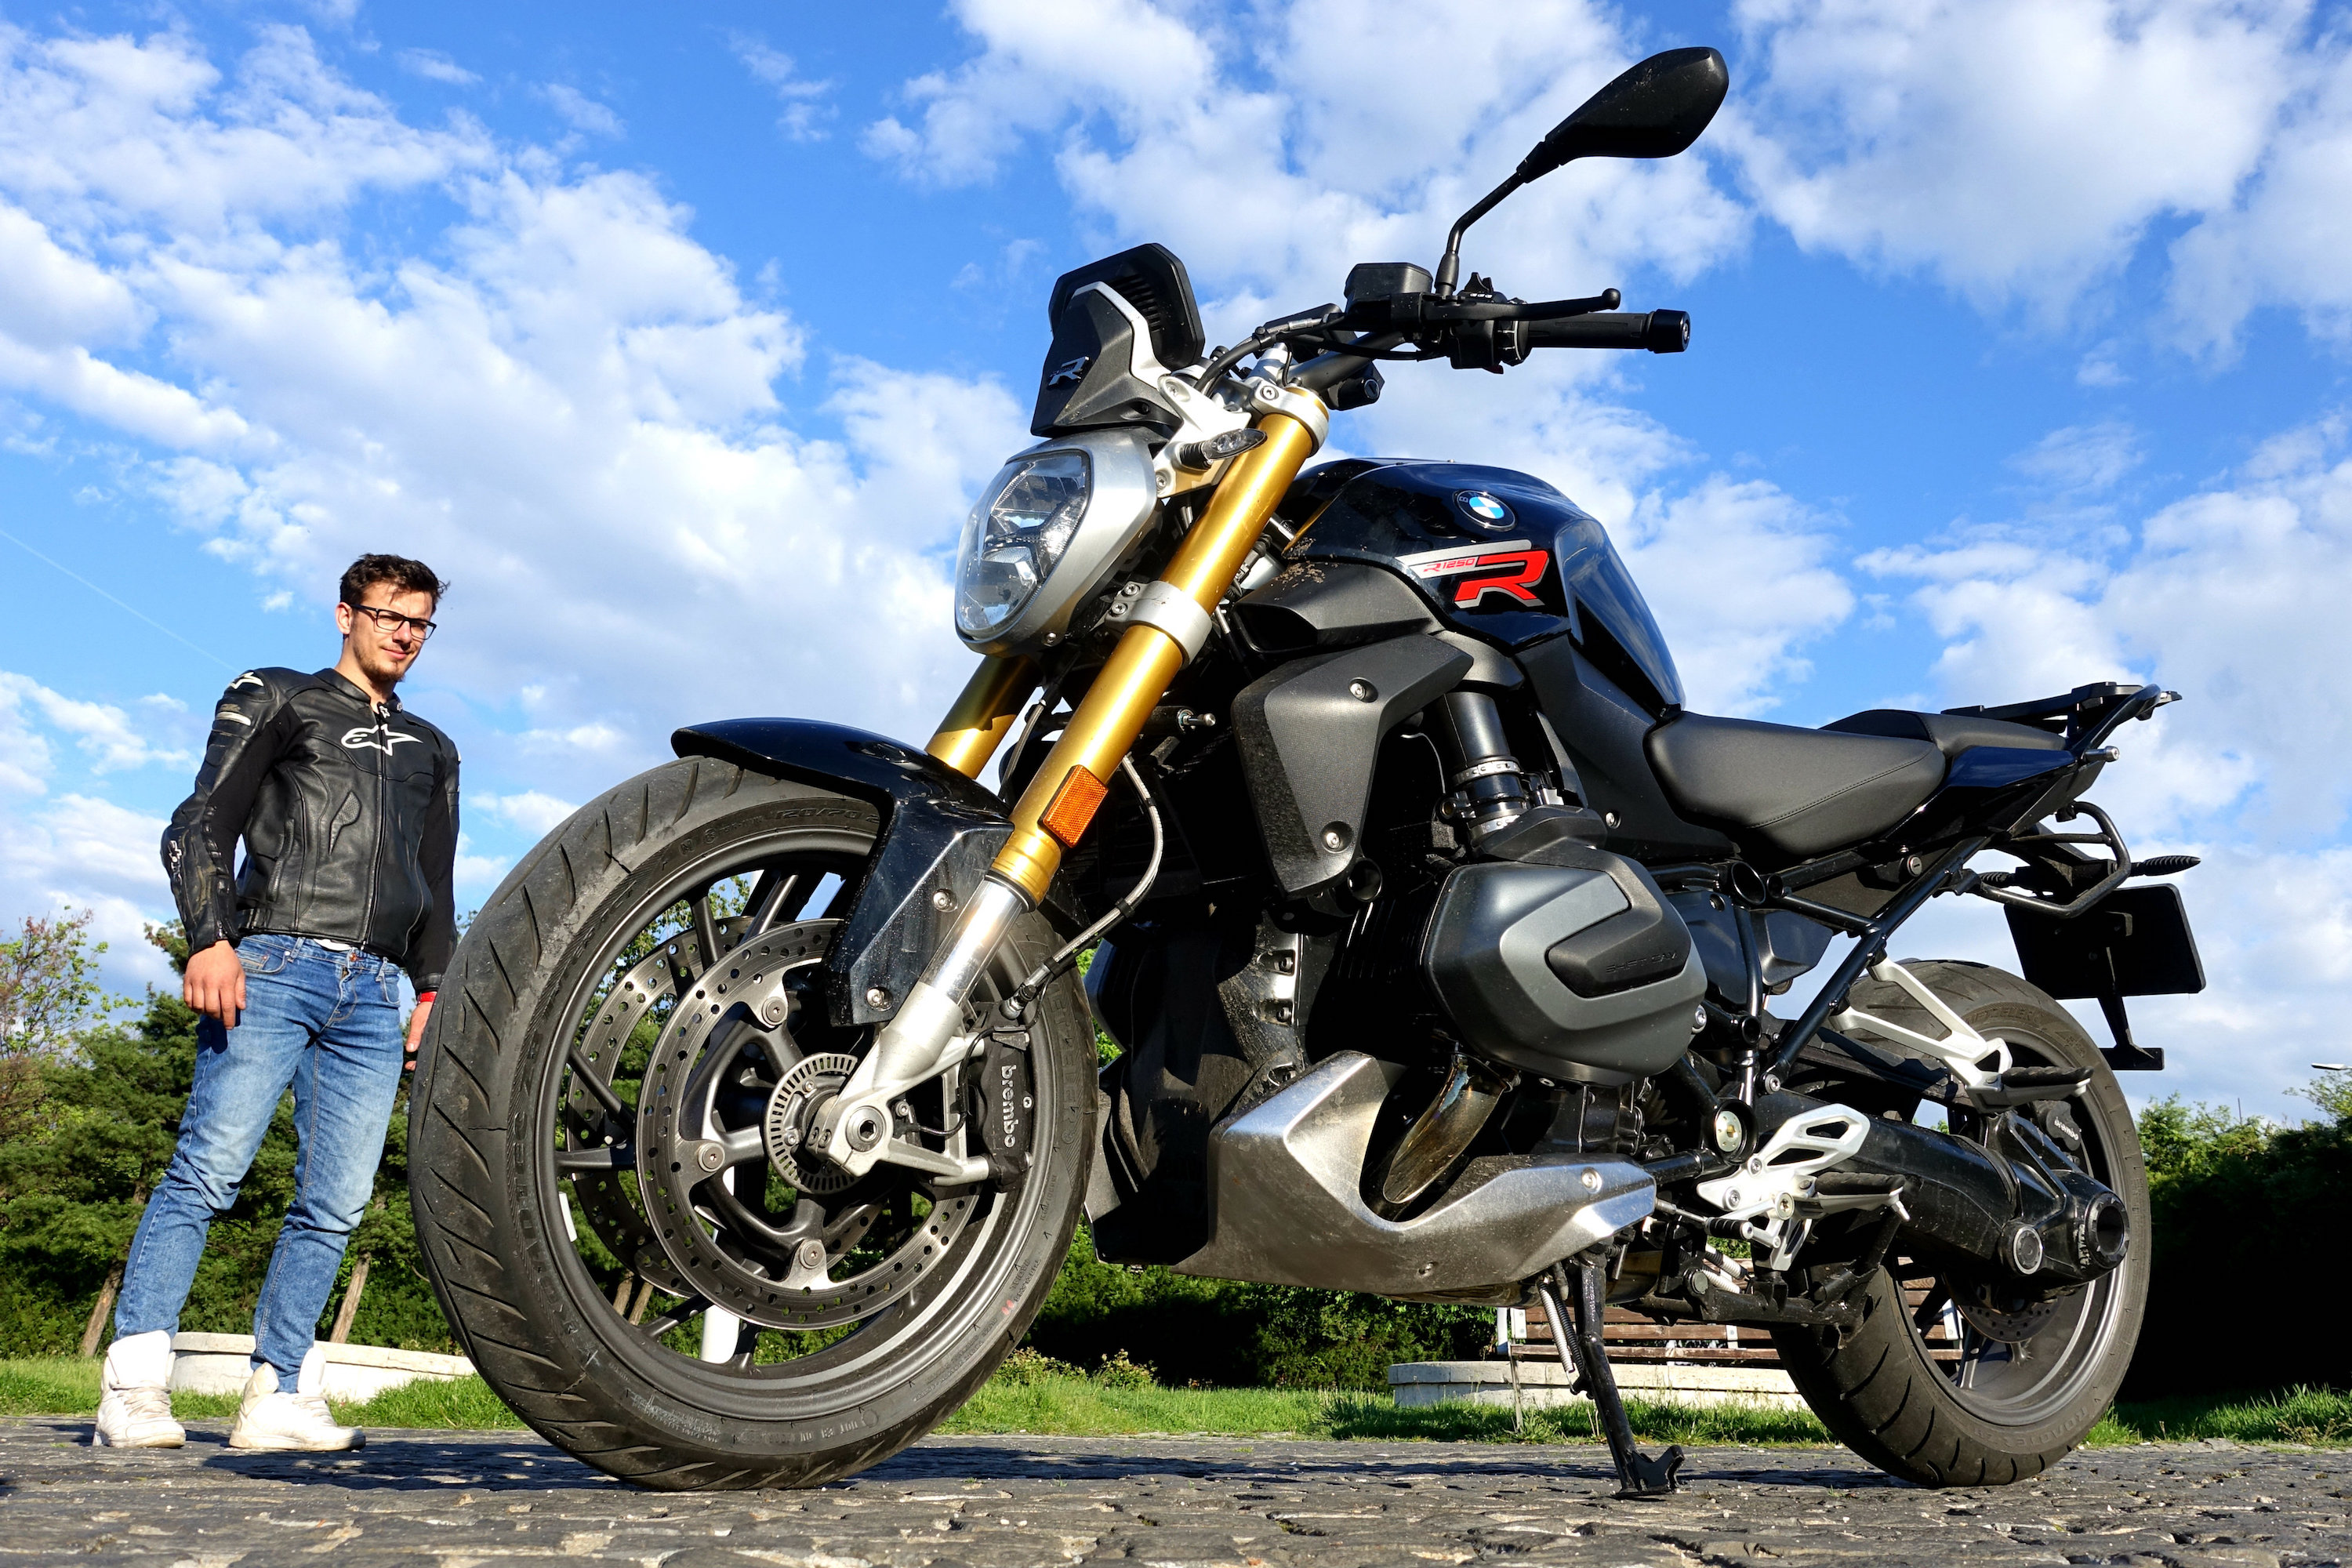 2011 Benelli TnT R160 Naked Bike Now Available in the US